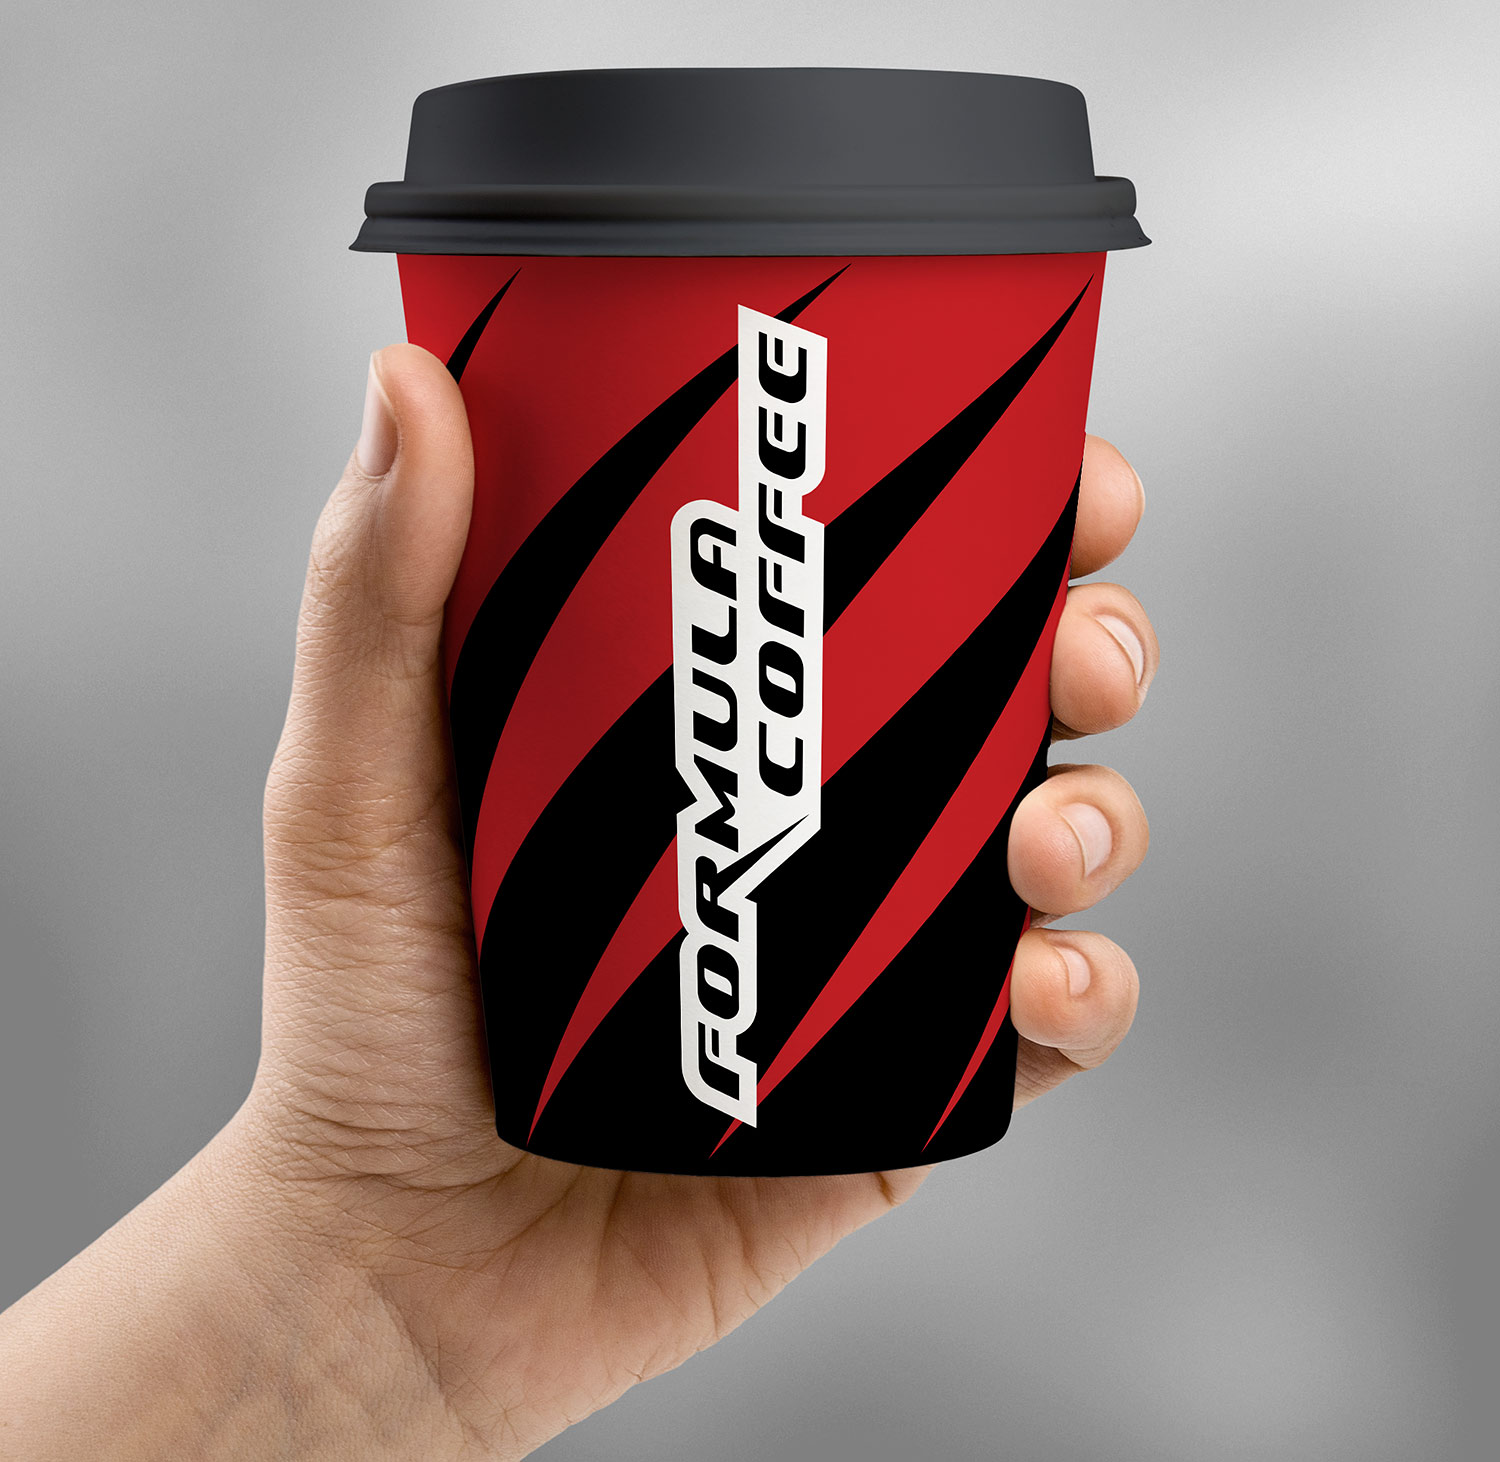 A branded cardboard coffee cup with the logo Formula Coffee.